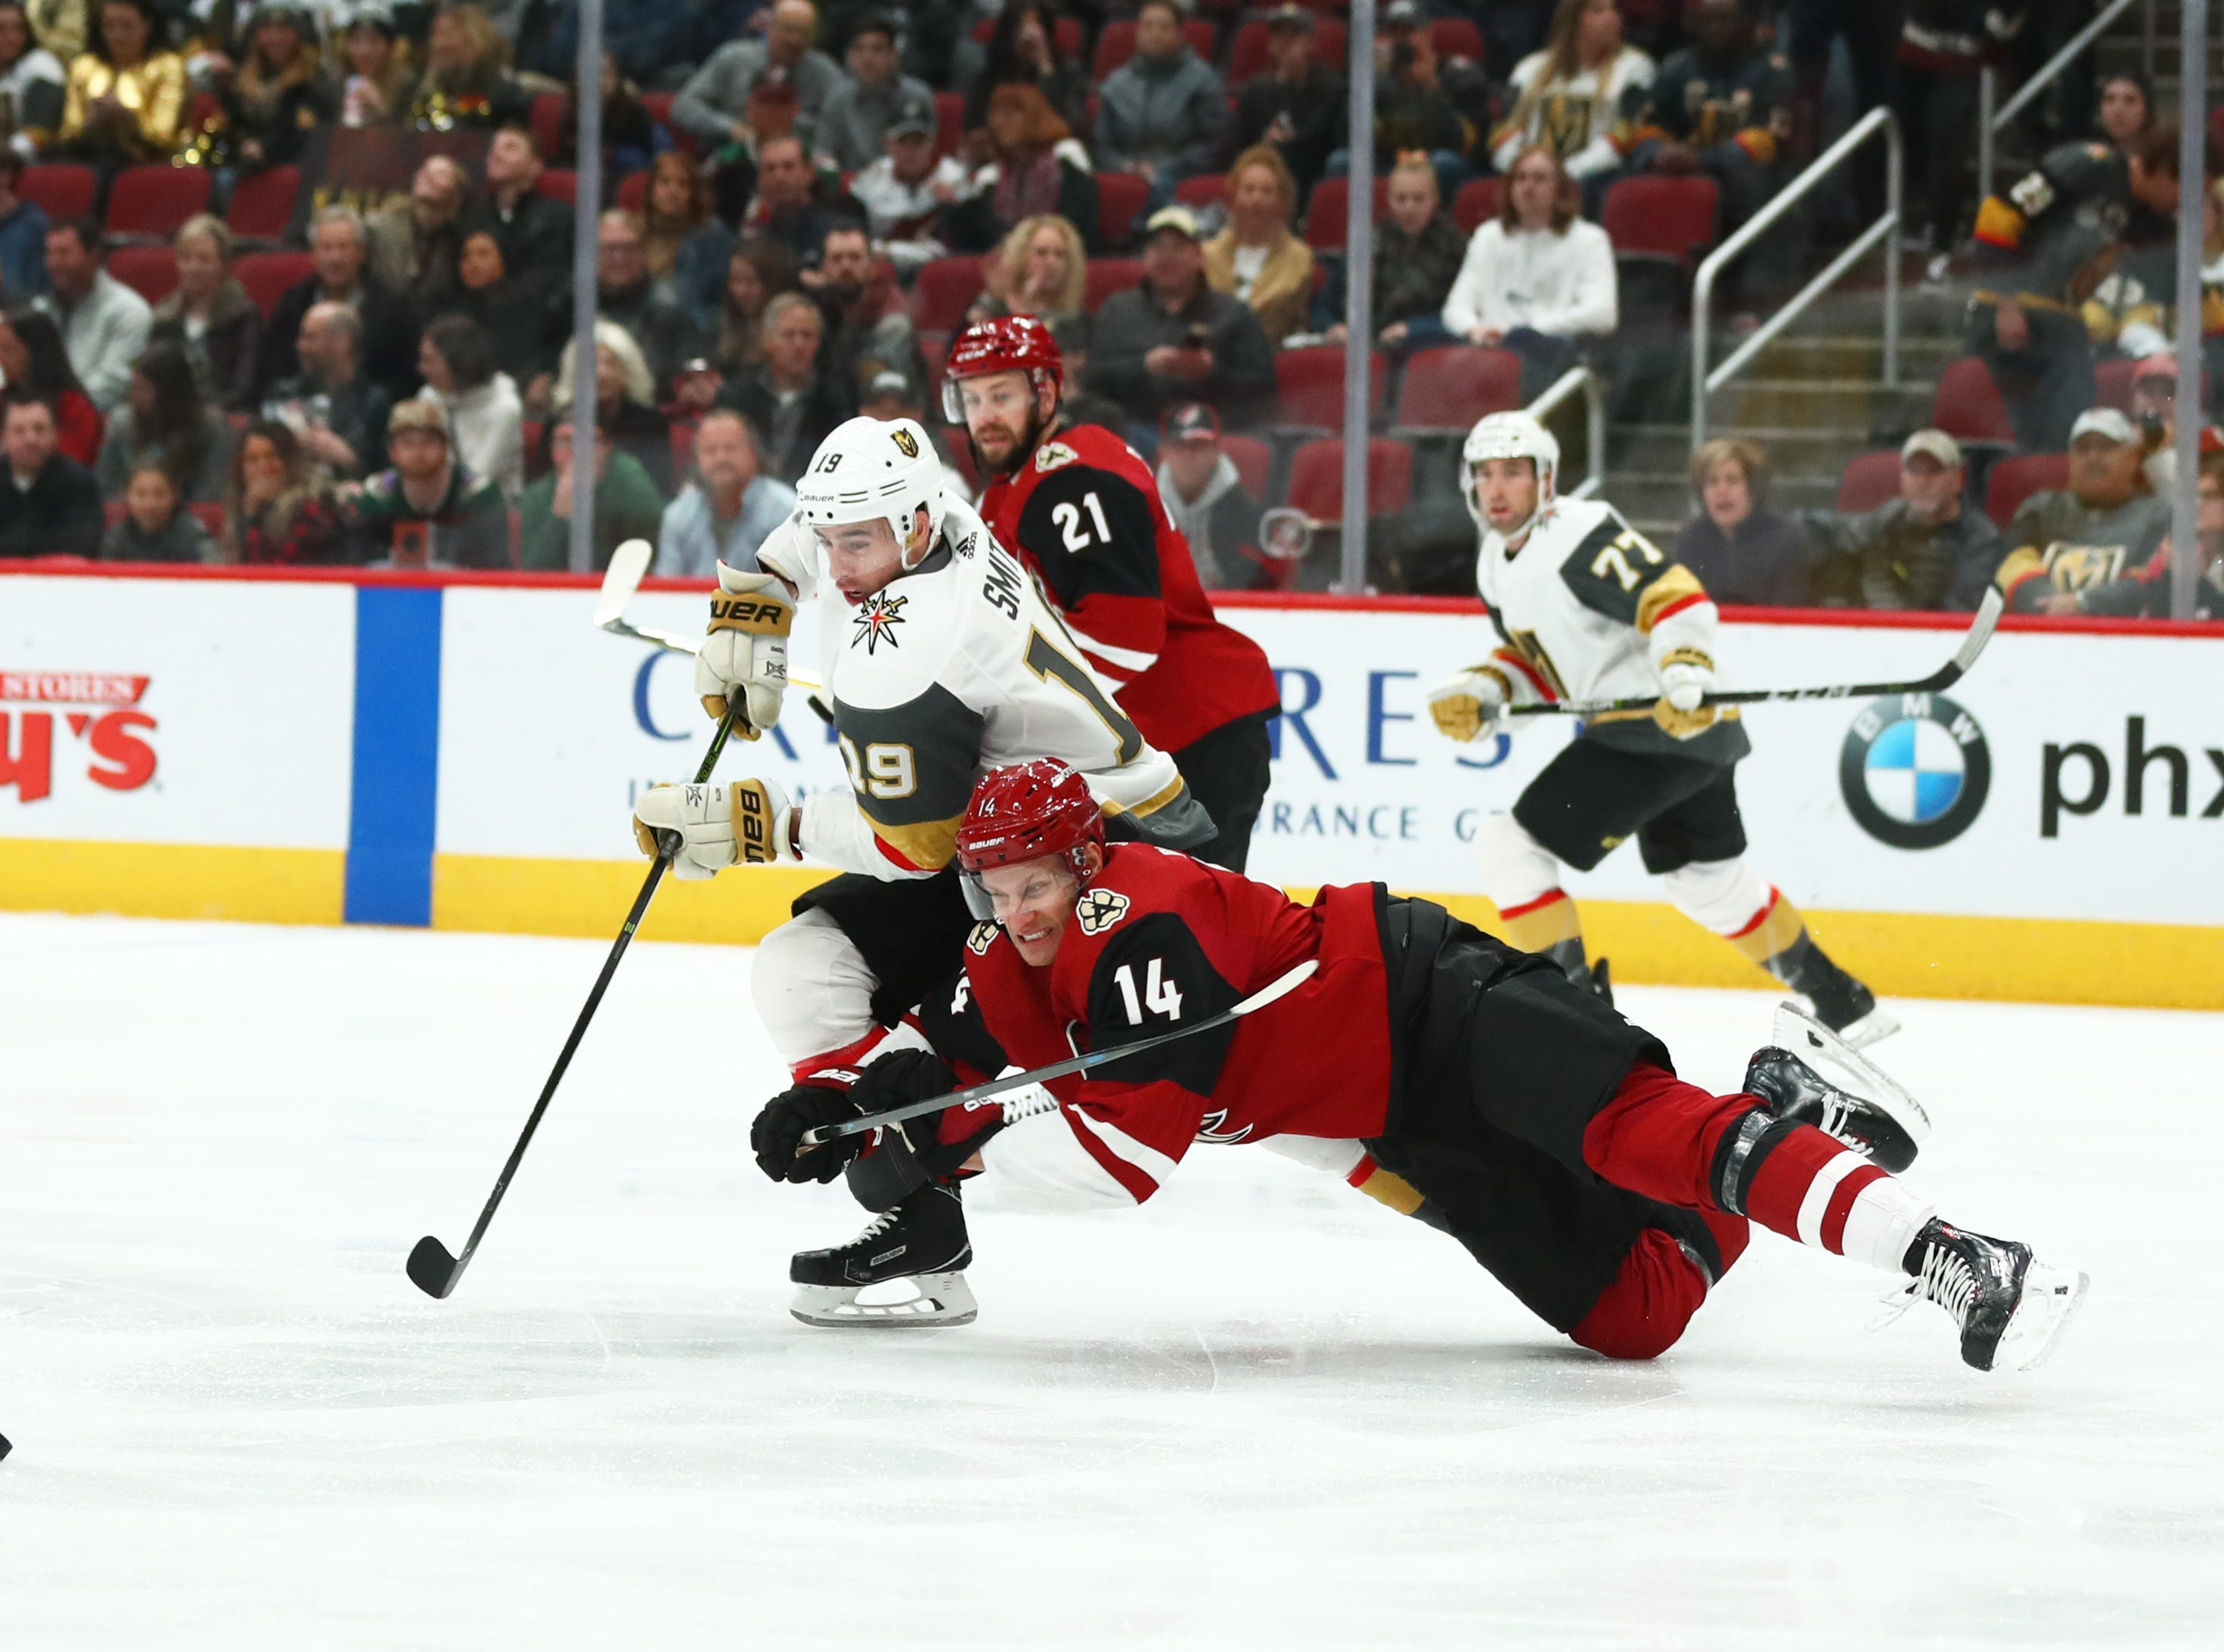 Dec 30, 2018; Glendale, AZ, USA; Arizona Coyotes right wing Richard Panik (14) falls to the ice as he battles for the puck against Vegas Golden Knights right wing Reilly Smith (19) in the first period at Gila River Arena. Mandatory Credit: Mark J. Rebilas-USA TODAY Sports